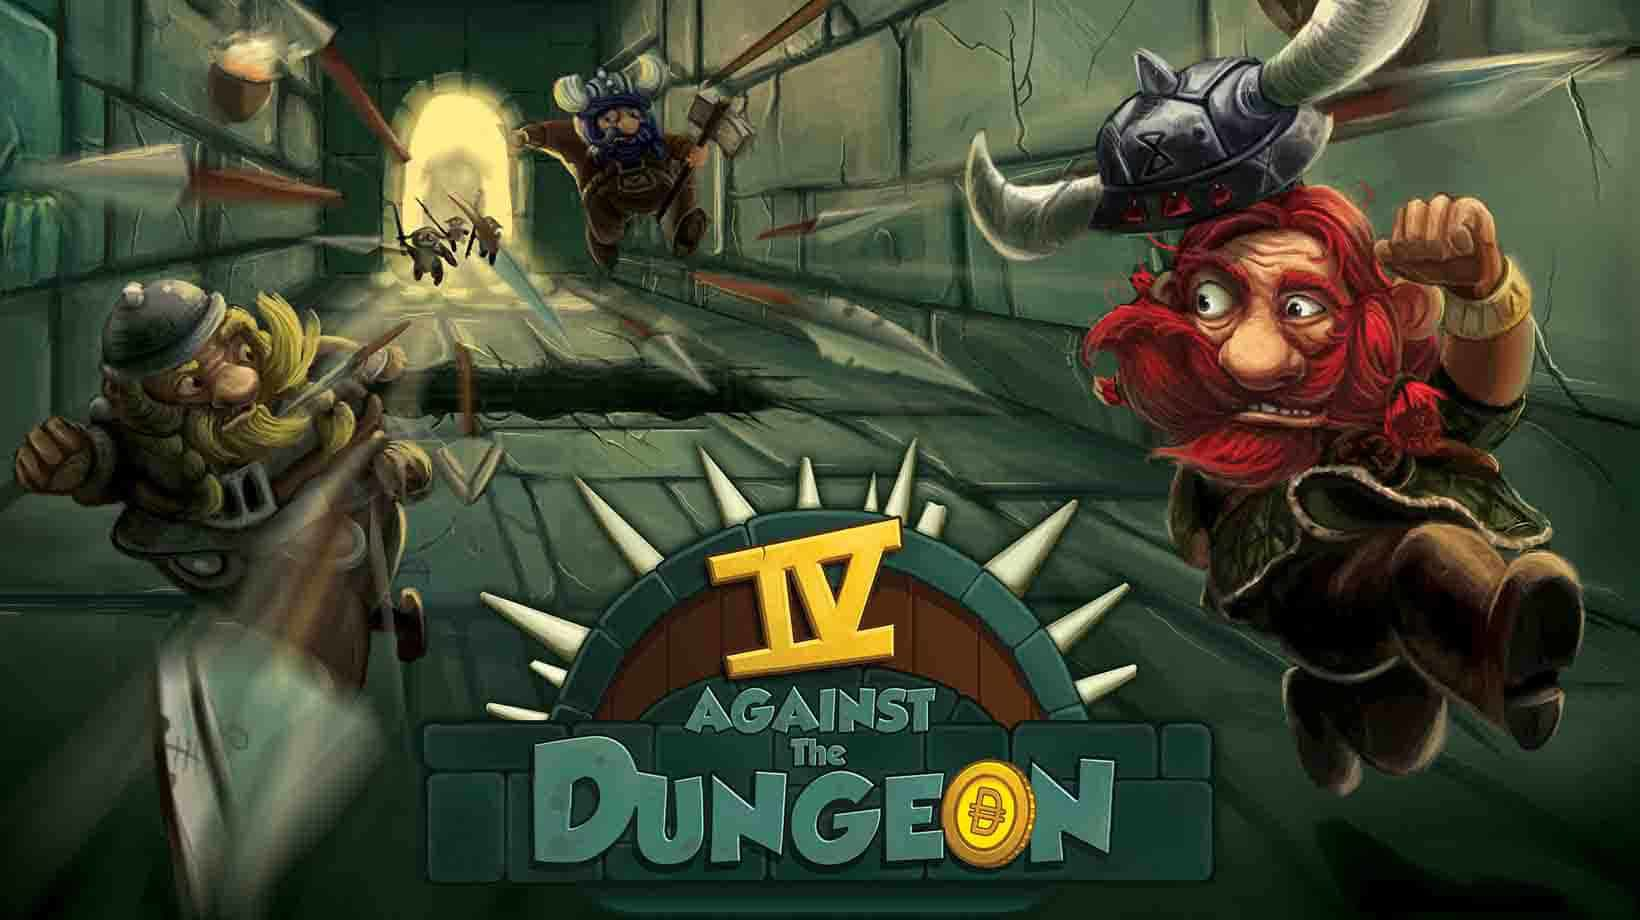 4-against-the-dungeon